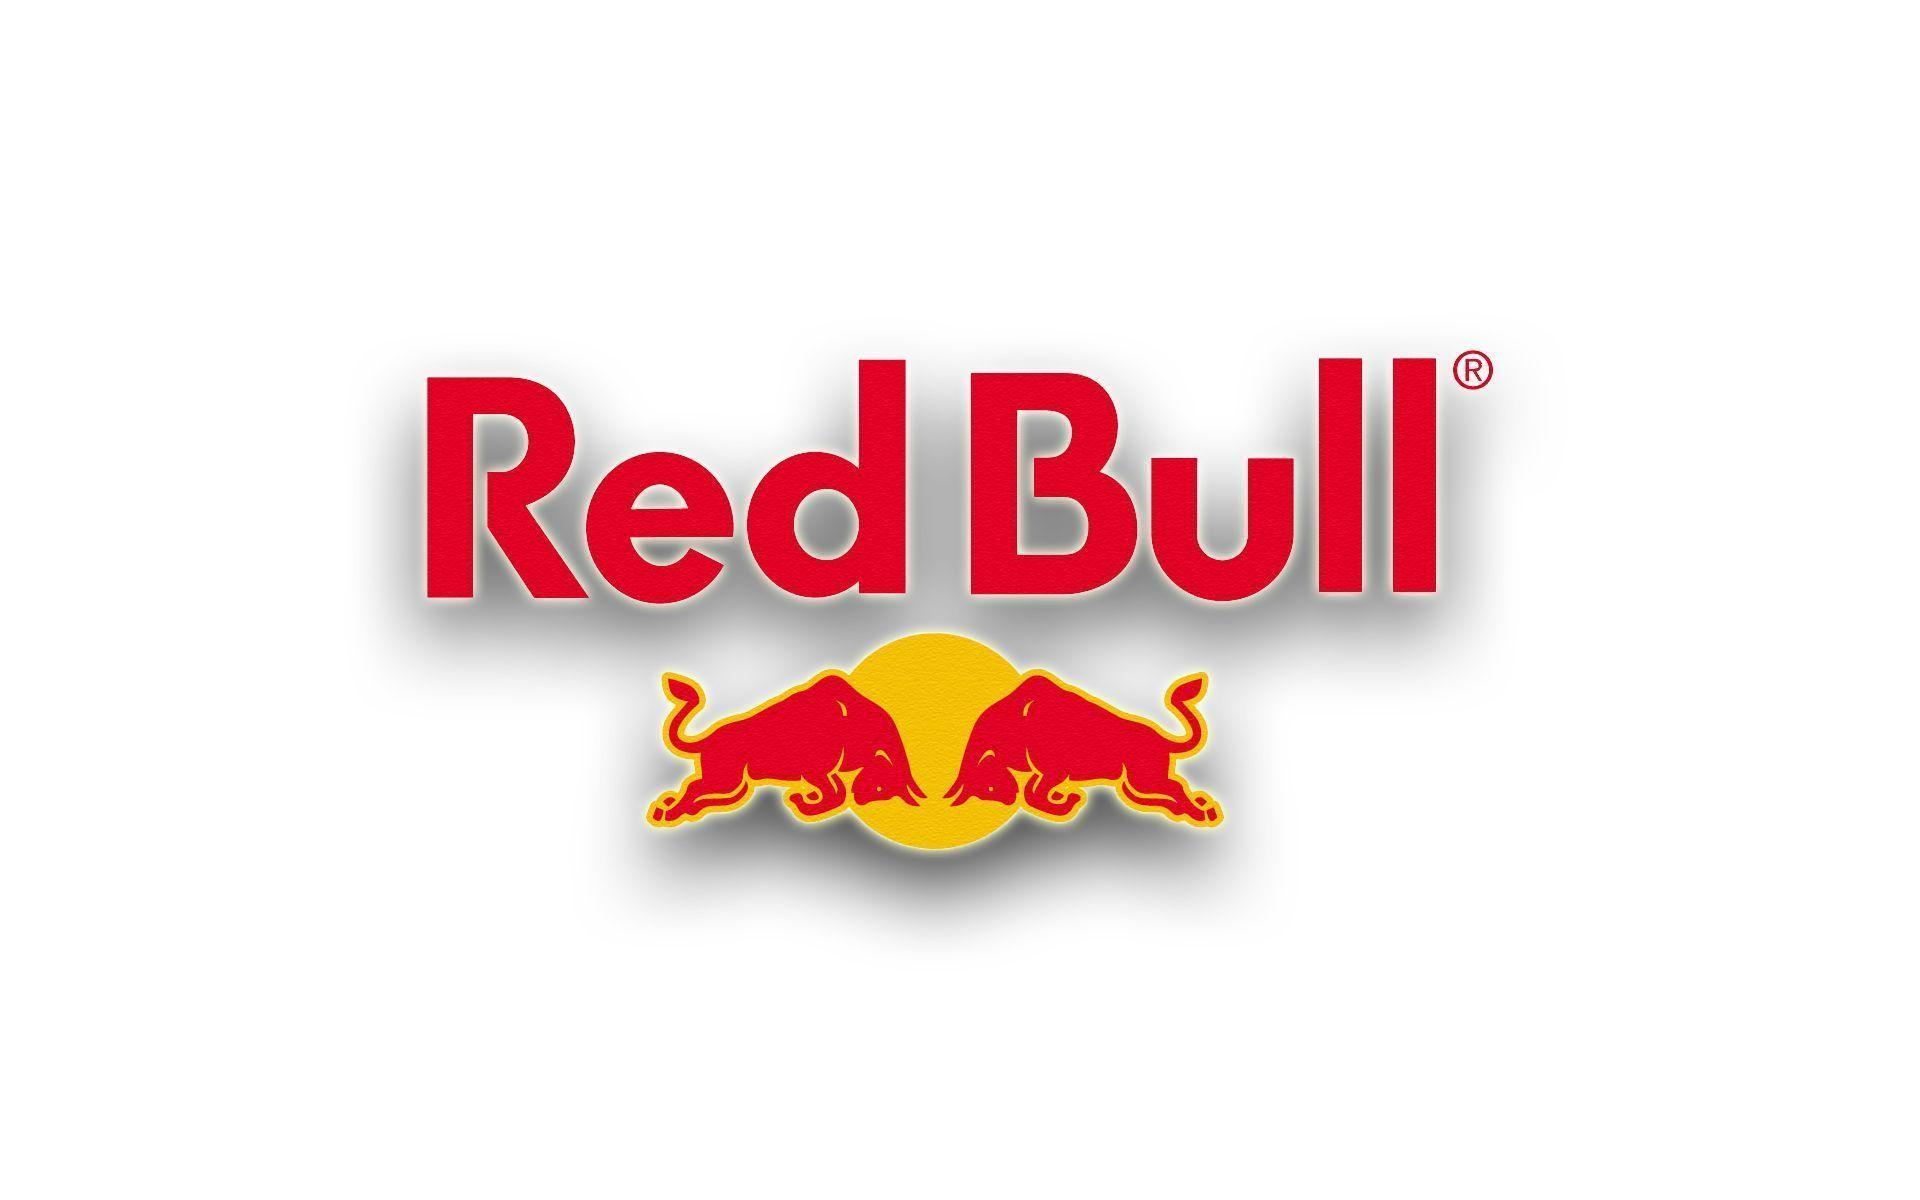 Fonds d&Red Bull : tous les wallpapers Red Bull